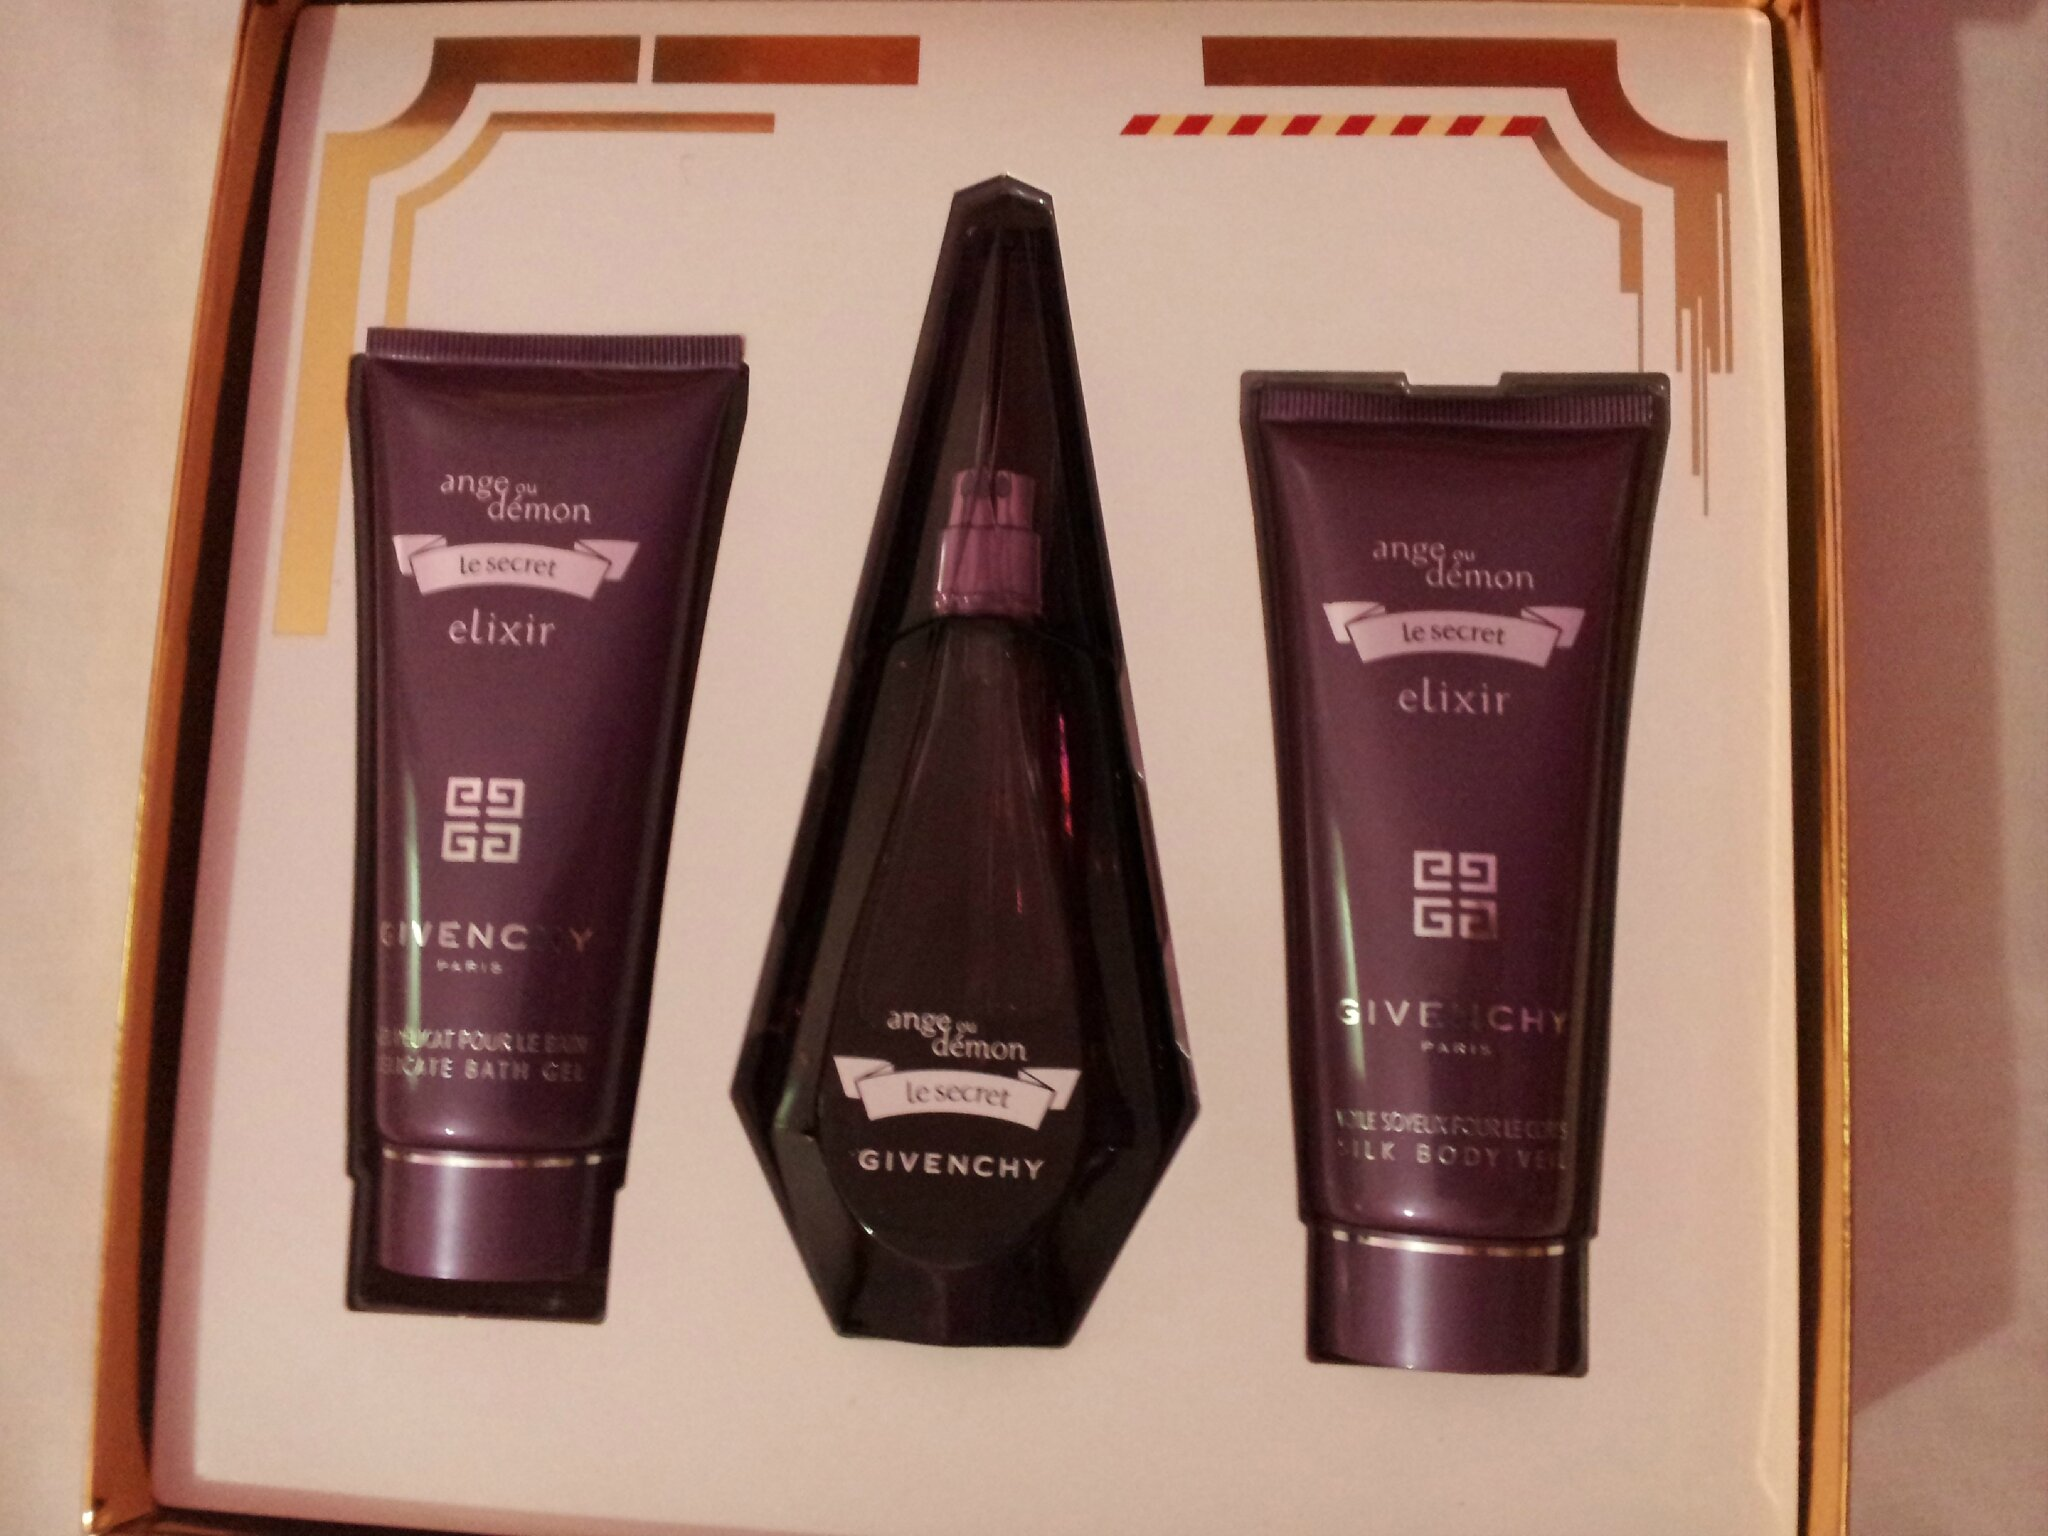 givenchy ange ou demon le secret elixir coffret eau de. Black Bedroom Furniture Sets. Home Design Ideas